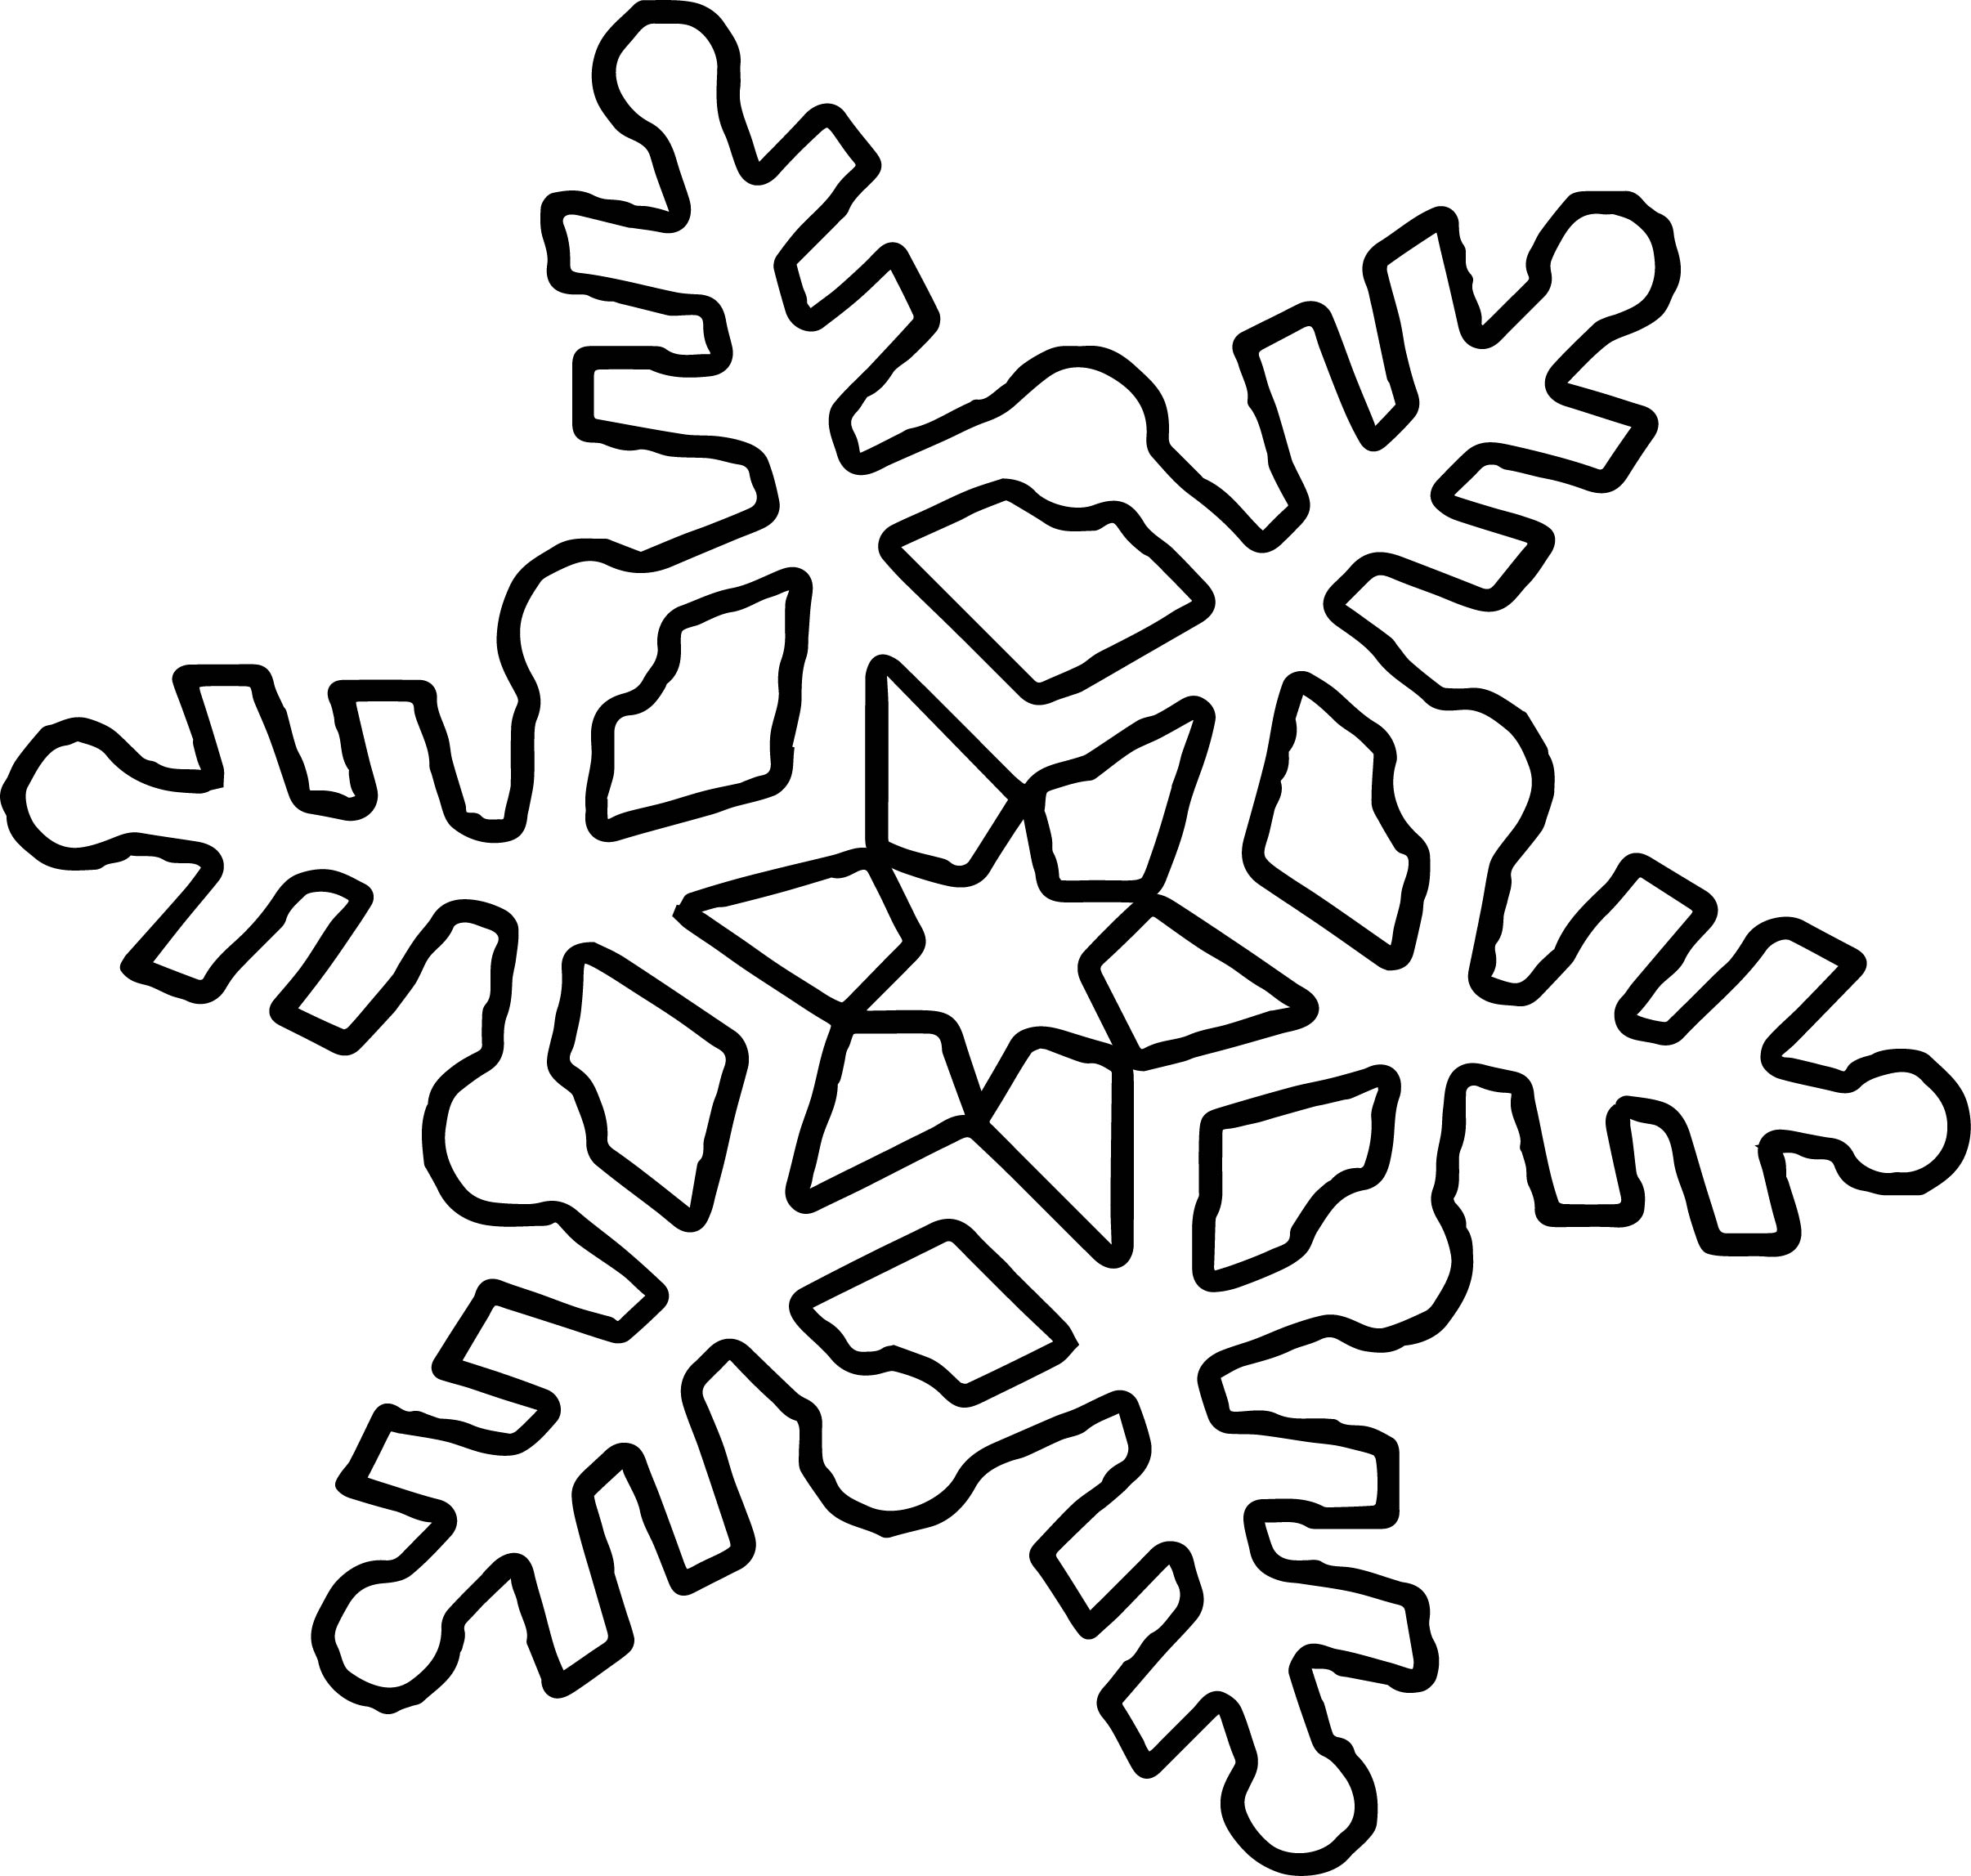 snowflakes coloring page printable snowflake coloring pages for kids cool2bkids page snowflakes coloring